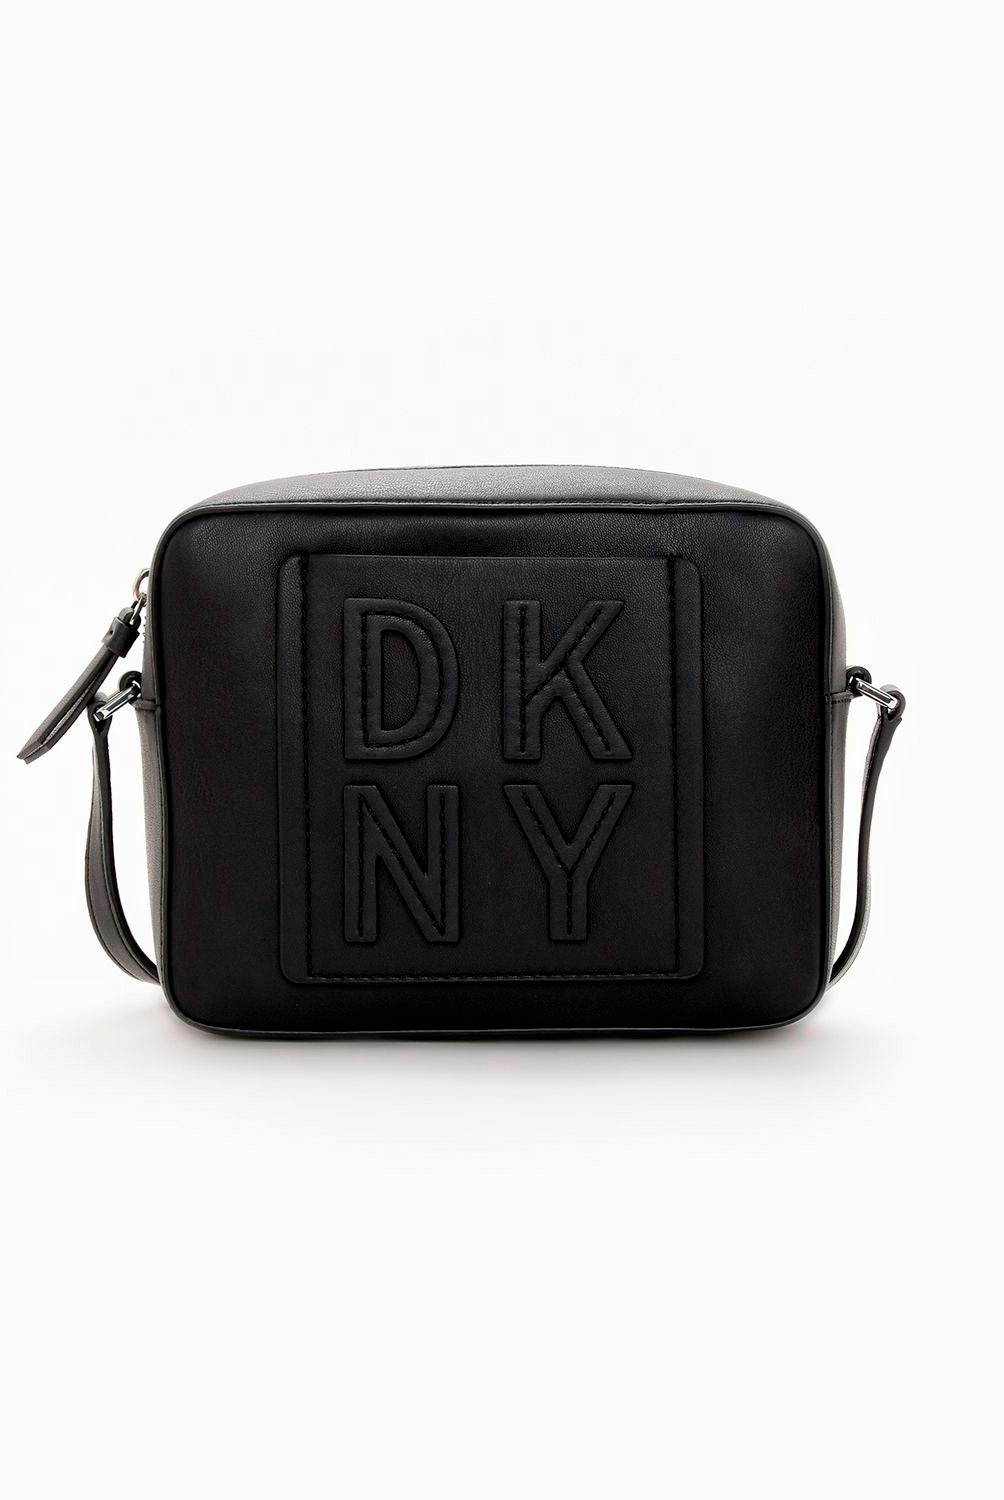 DKNY - Bolso DKNY cruzado Tilly Stacked